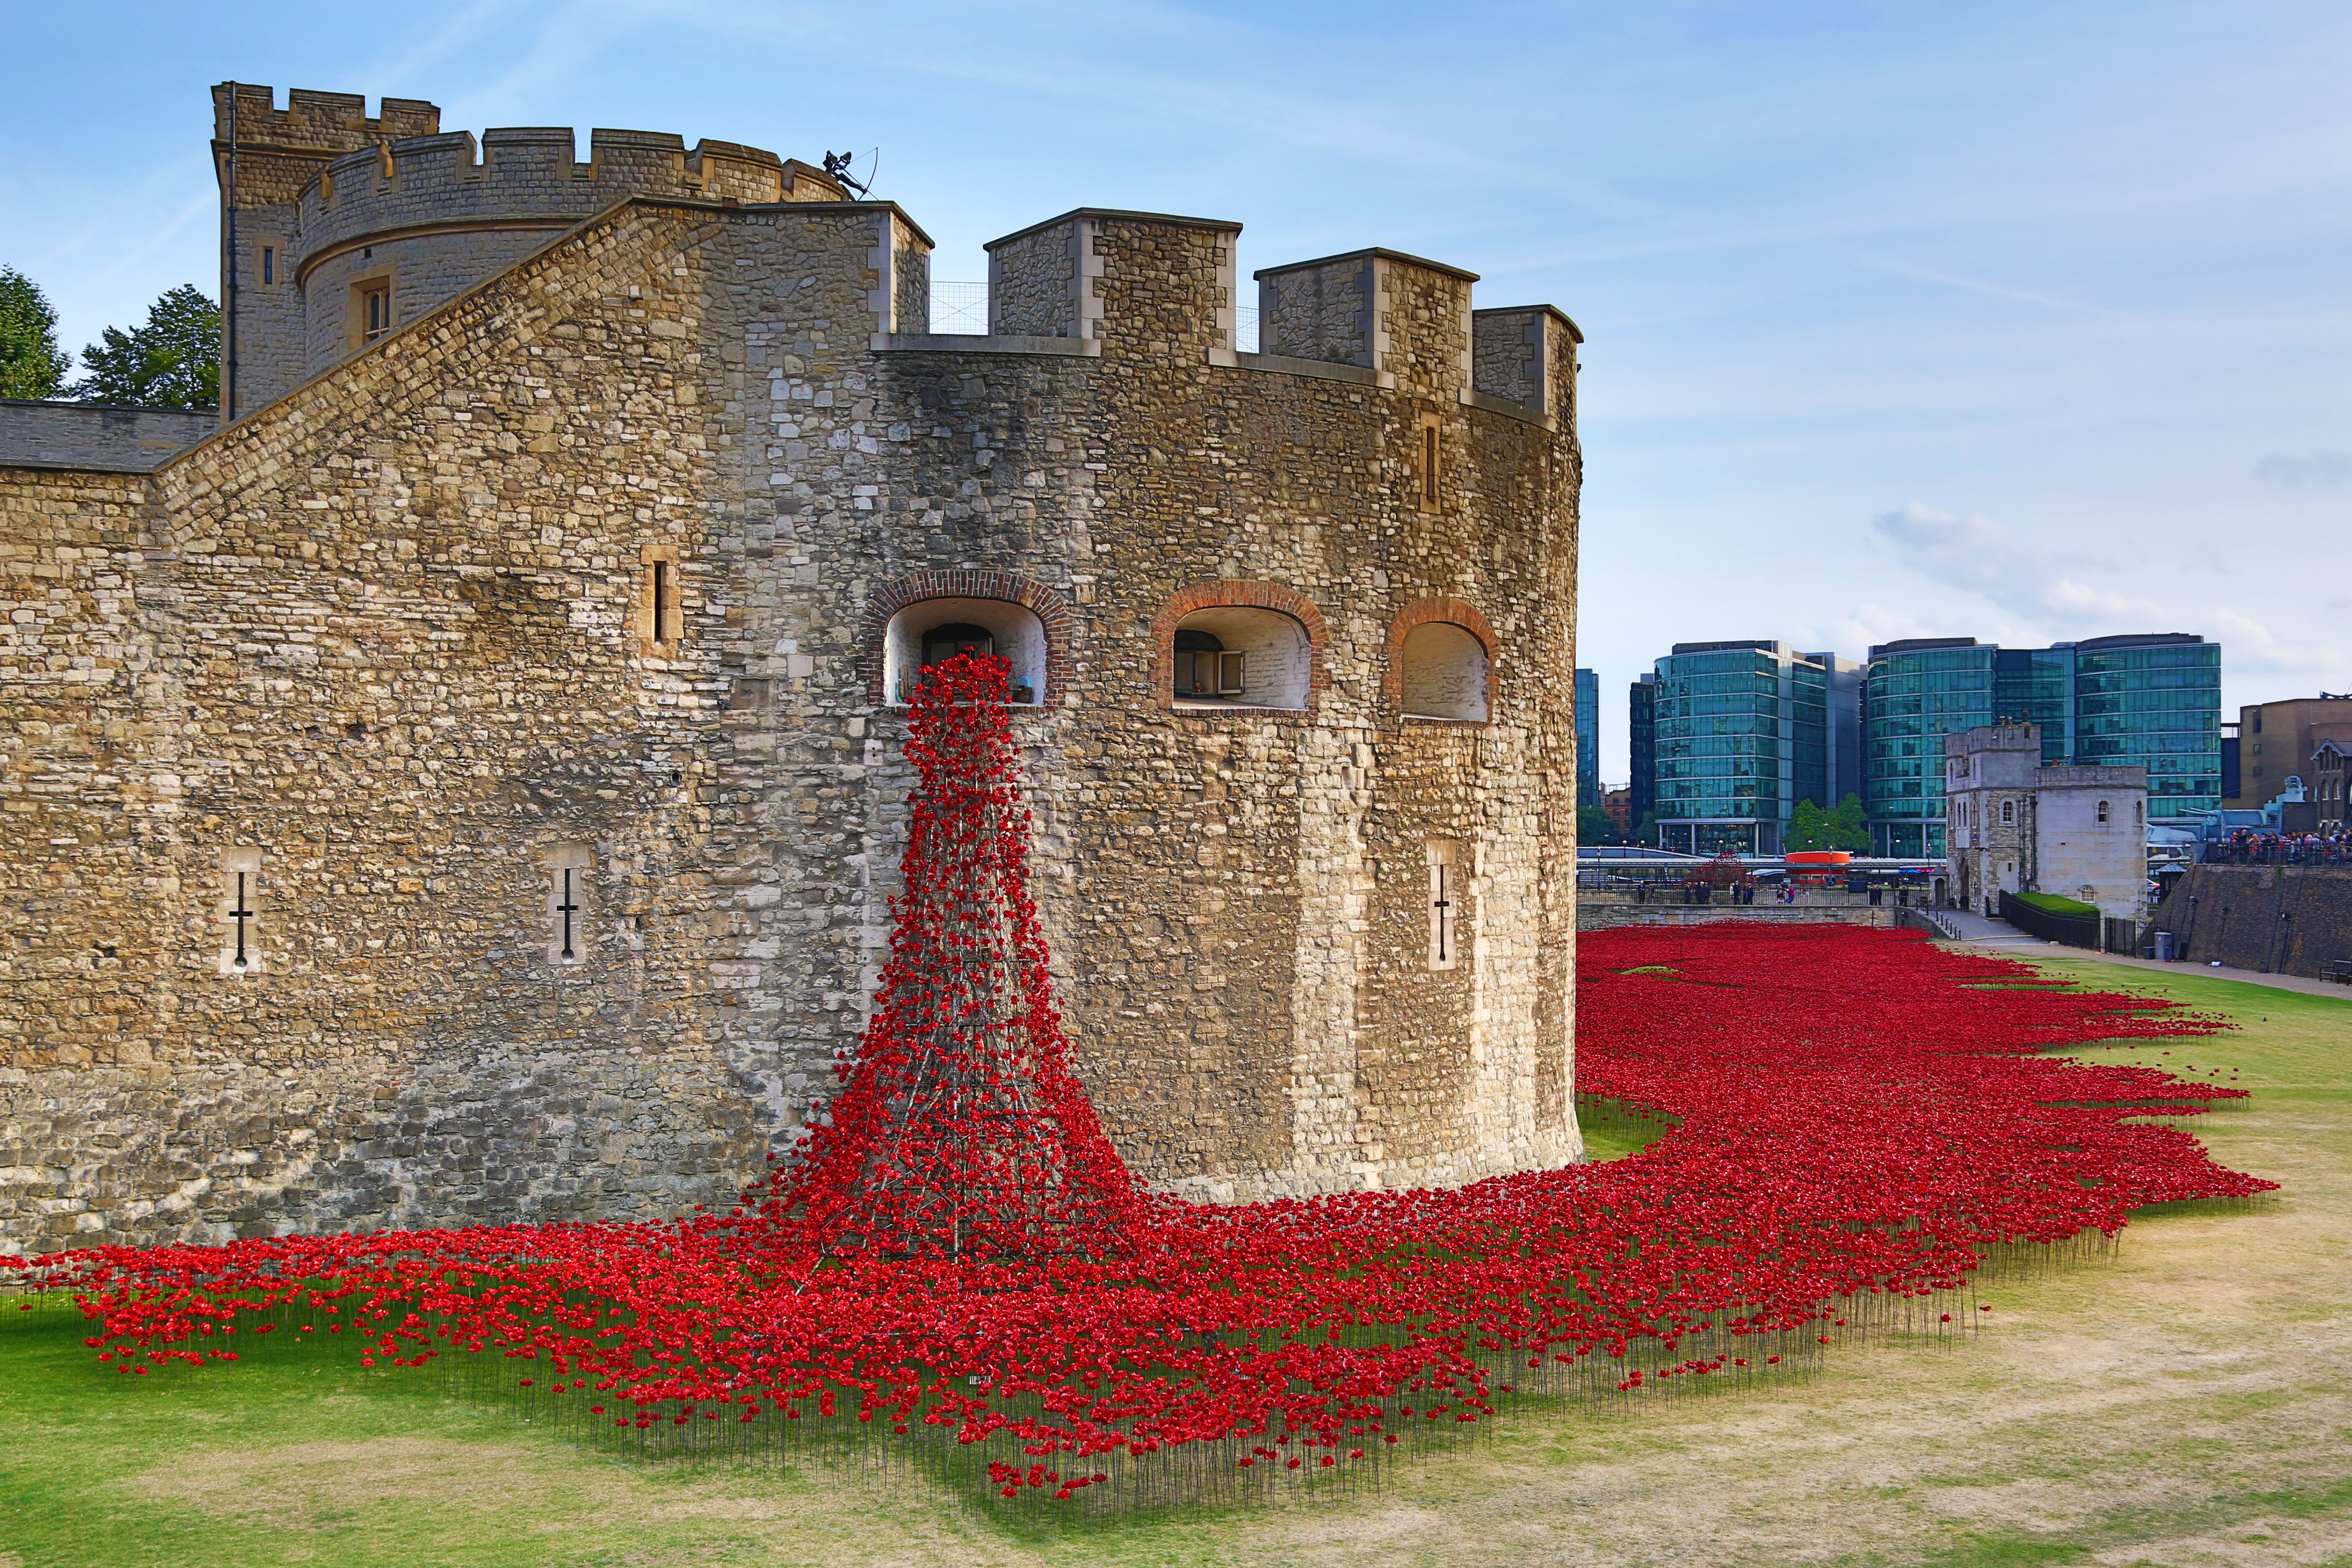 Aug. 5, 2014. A sea of poppies around the Tower of London at the opening of the 'Blood Swept Lands and Seas of Red' artwork by Paul Cummins comprising 888,246 ceramic poppies, each poppy representing a British or Colonial military fatality in the First World War.